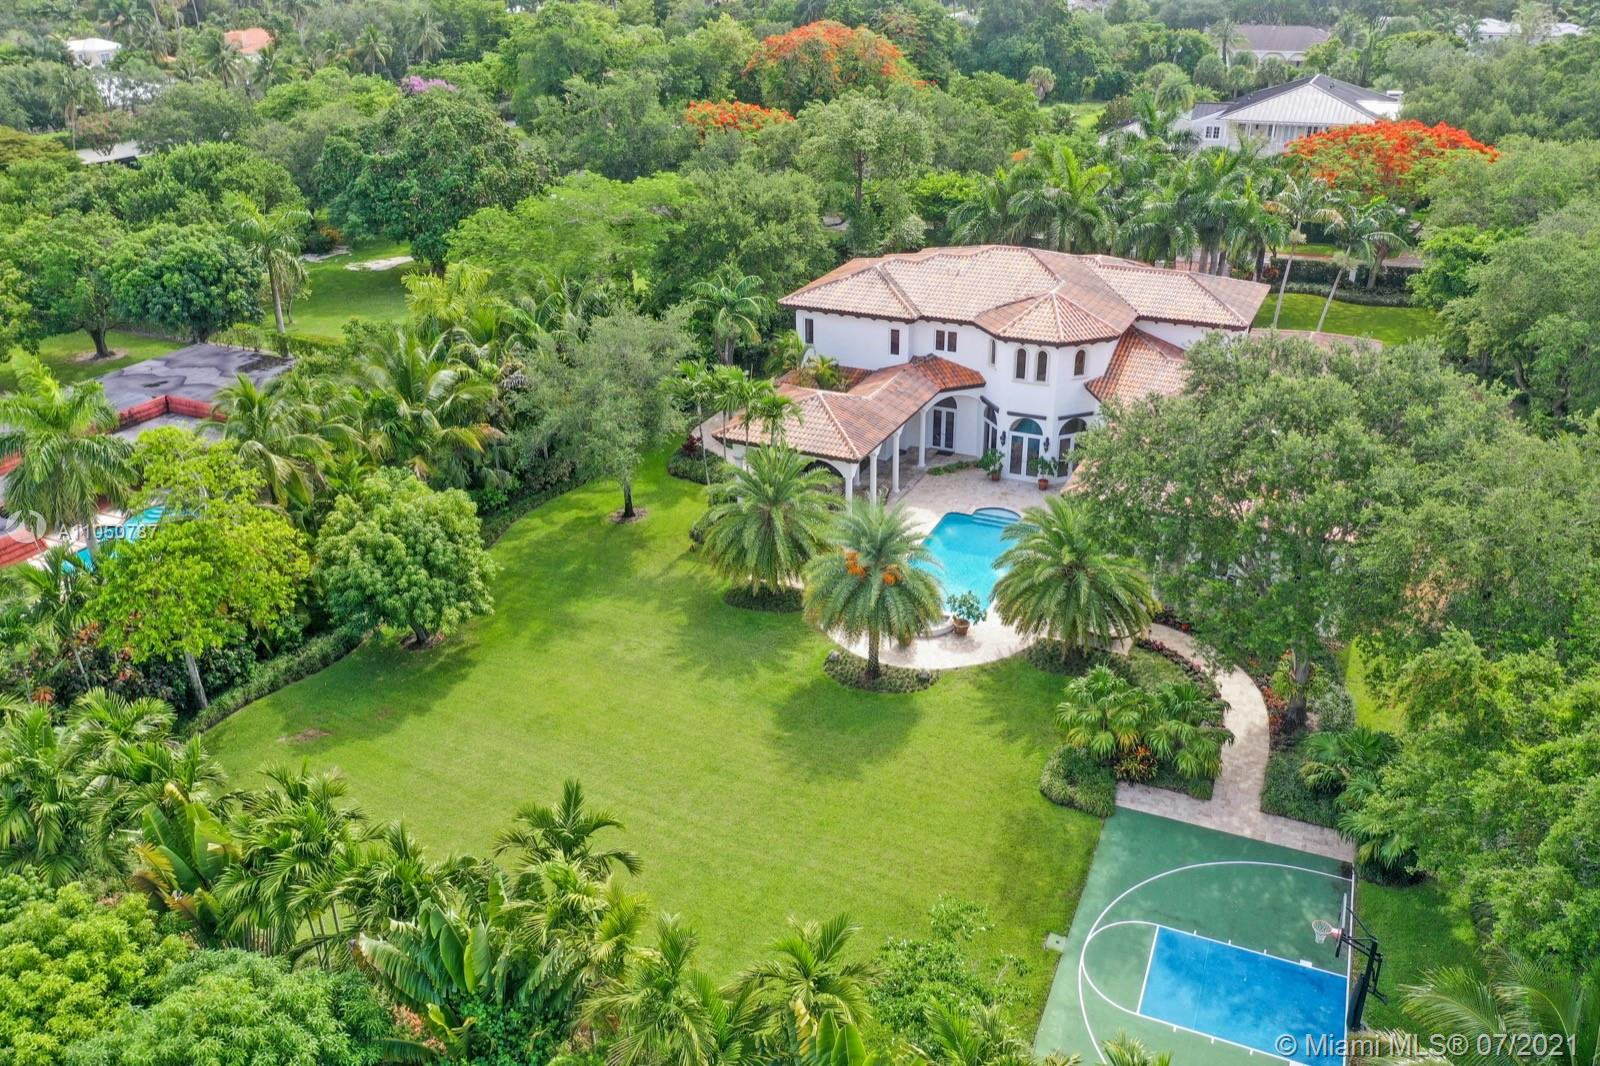 Great opportunity to own a coveted gated & custom 7 bedrooms/8.5 bathrooms estate w/ 3-car garage, on a deep oversized lot w/ custom design landscaping, located in prestigious N. Pinecrest. Some of the amazing features of this property are: Resort style amenities, including oversized pool and spa, 2 large, covered terraces with S/S built-in grill & bar, multi-sport court, gourmet kitchen w/Euro wood cabinets & Thermador appliances, family room w/bar & fireplace. Maids quarter, gym/media room, library/office, w/ 3 separate built-in desks, insulated & pre wired closet to be converted into a wine cellar. 2 story foyer w/ panoramic pool & garden views and much more. Walking distance from Gulliver Prep.